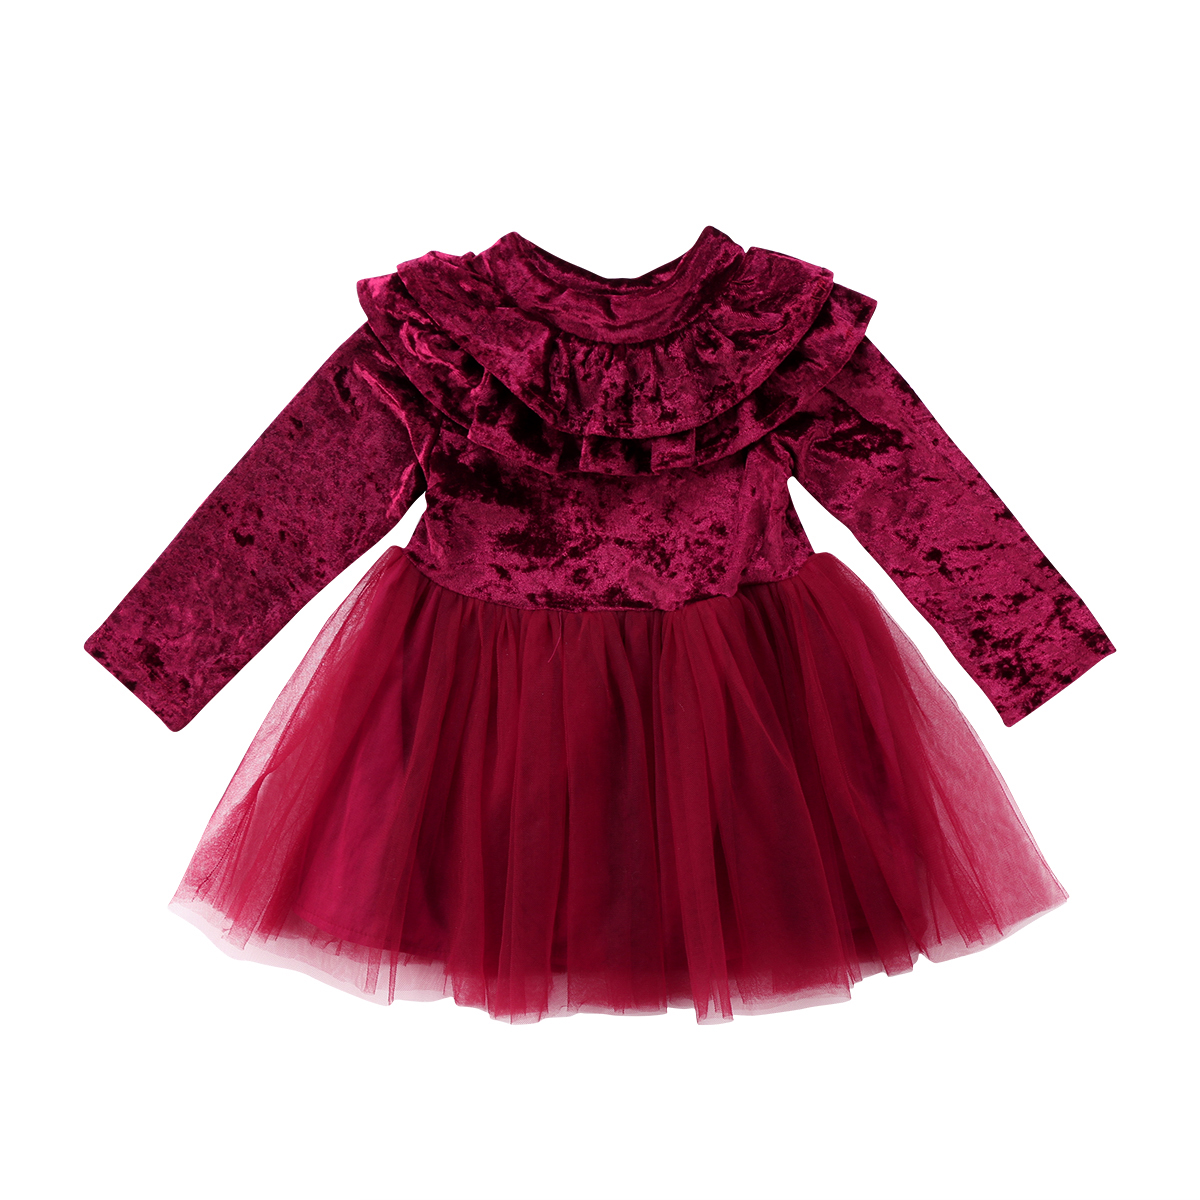 Princess Kids Baby Girls Dress Velvet Fleece Long Sleeve Midi Cute Tiered Tutu Party Ruffle Tulle Tutu Dresses Girl 1-6T party dress tutu tulle kids clothes long sleeve cute princess girl children clothing girl dresses for party 8 years 12 14 10 6